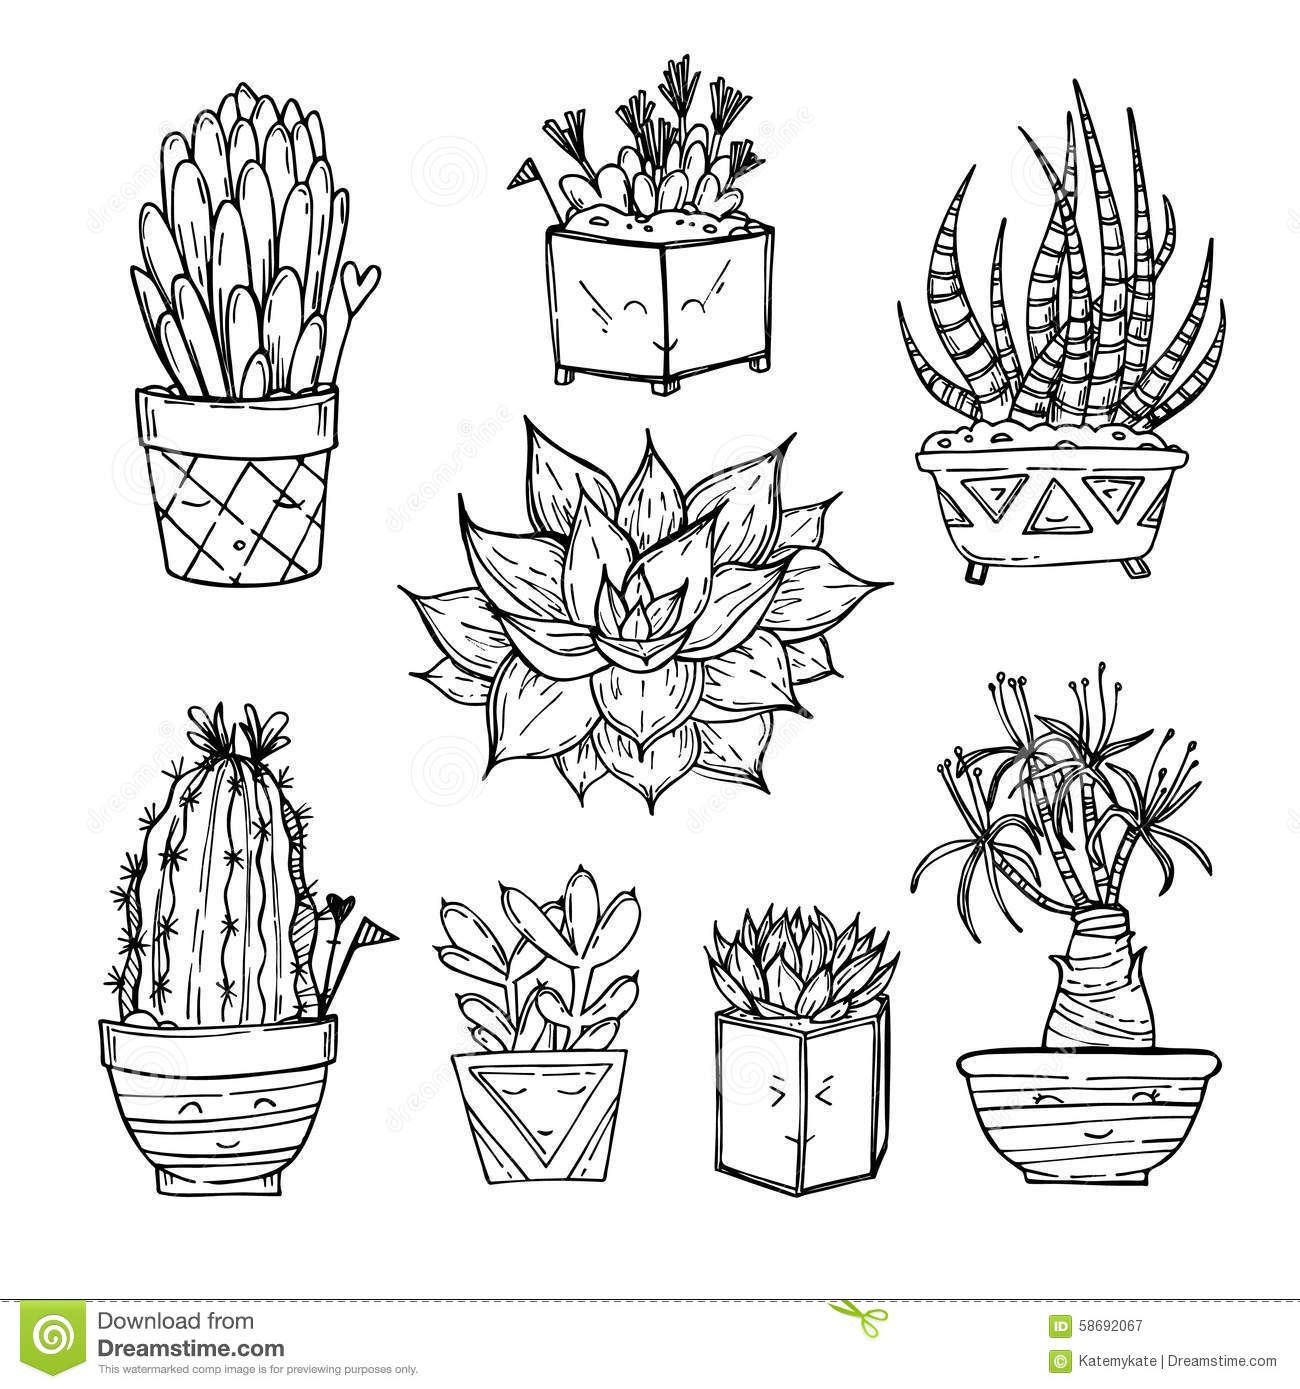 potted fern drawing clipart Google Search Proyecto